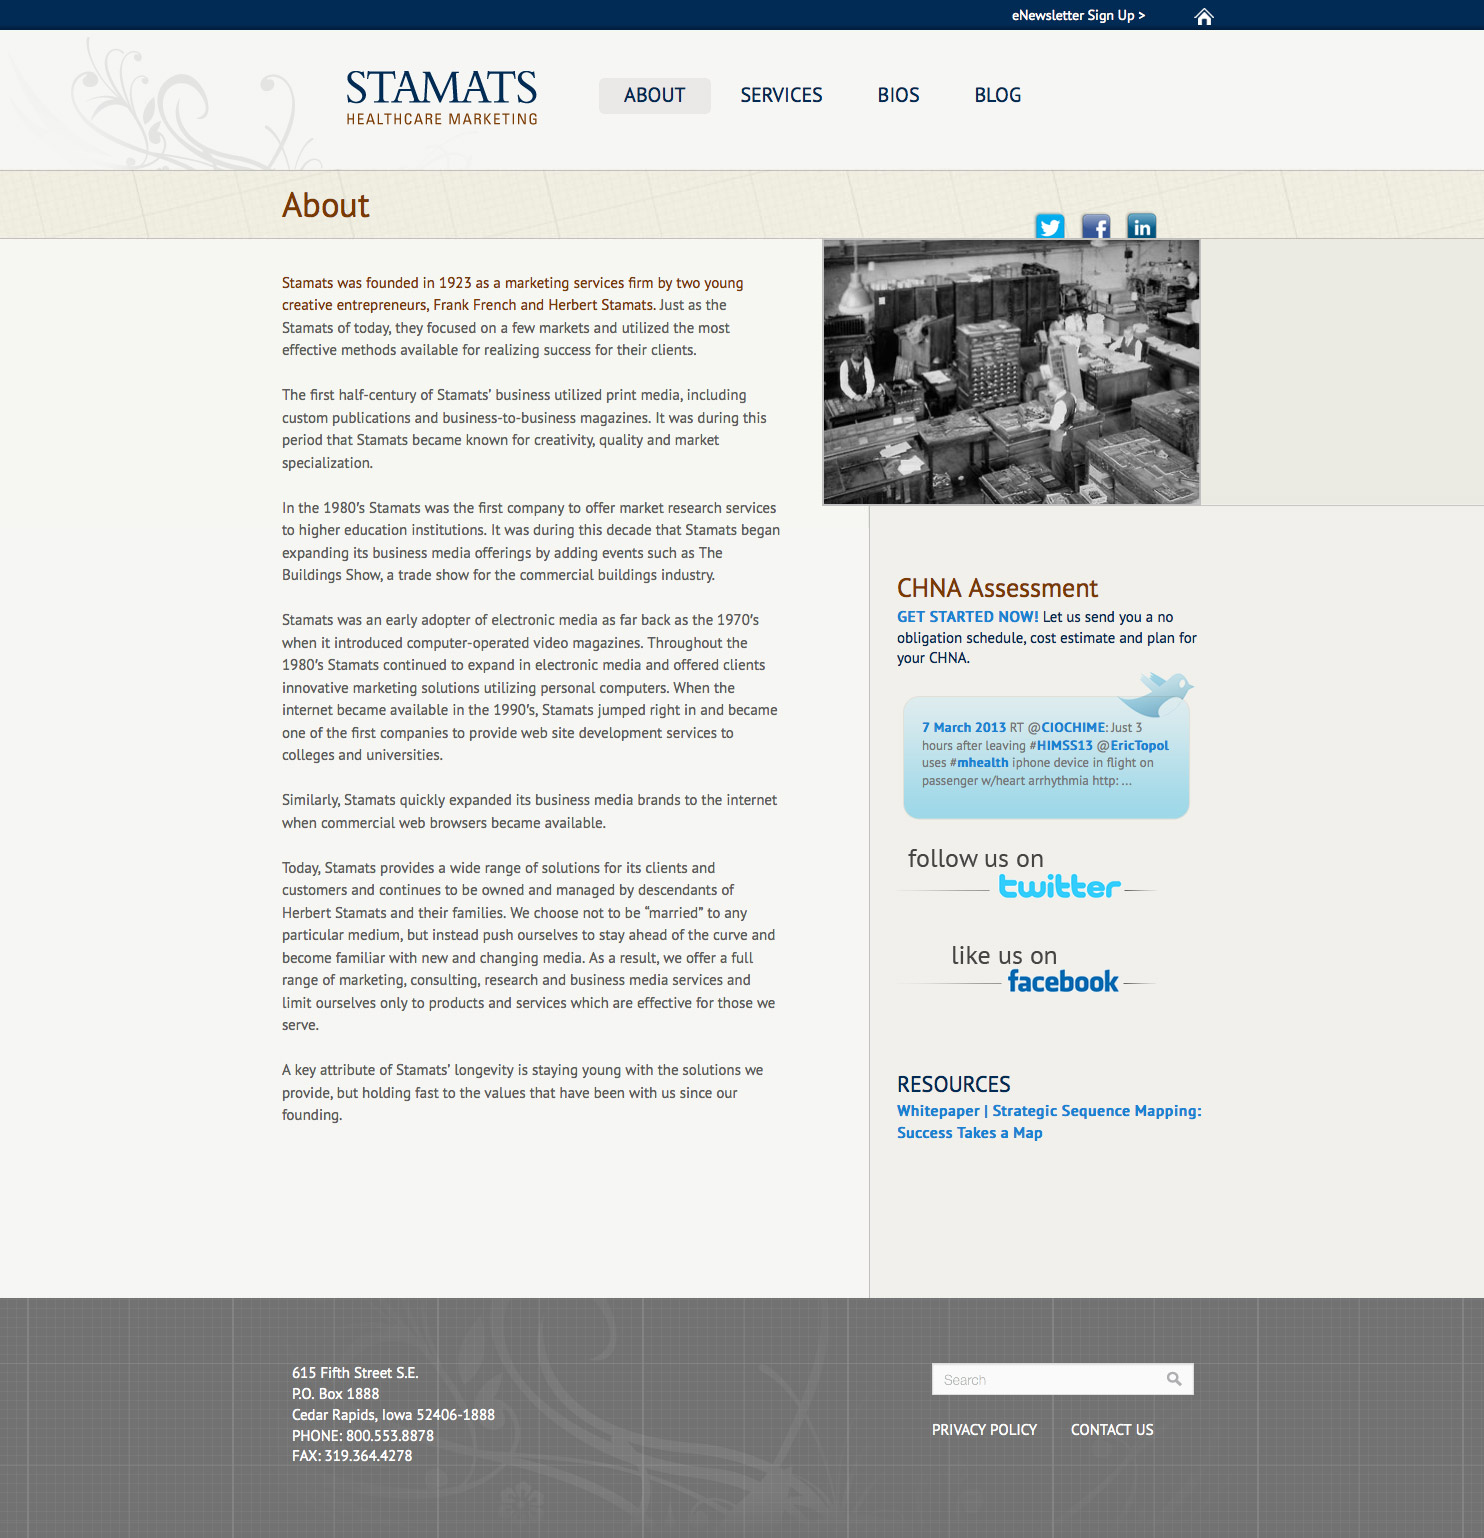 Stamats-Healthcare-Marketing-About